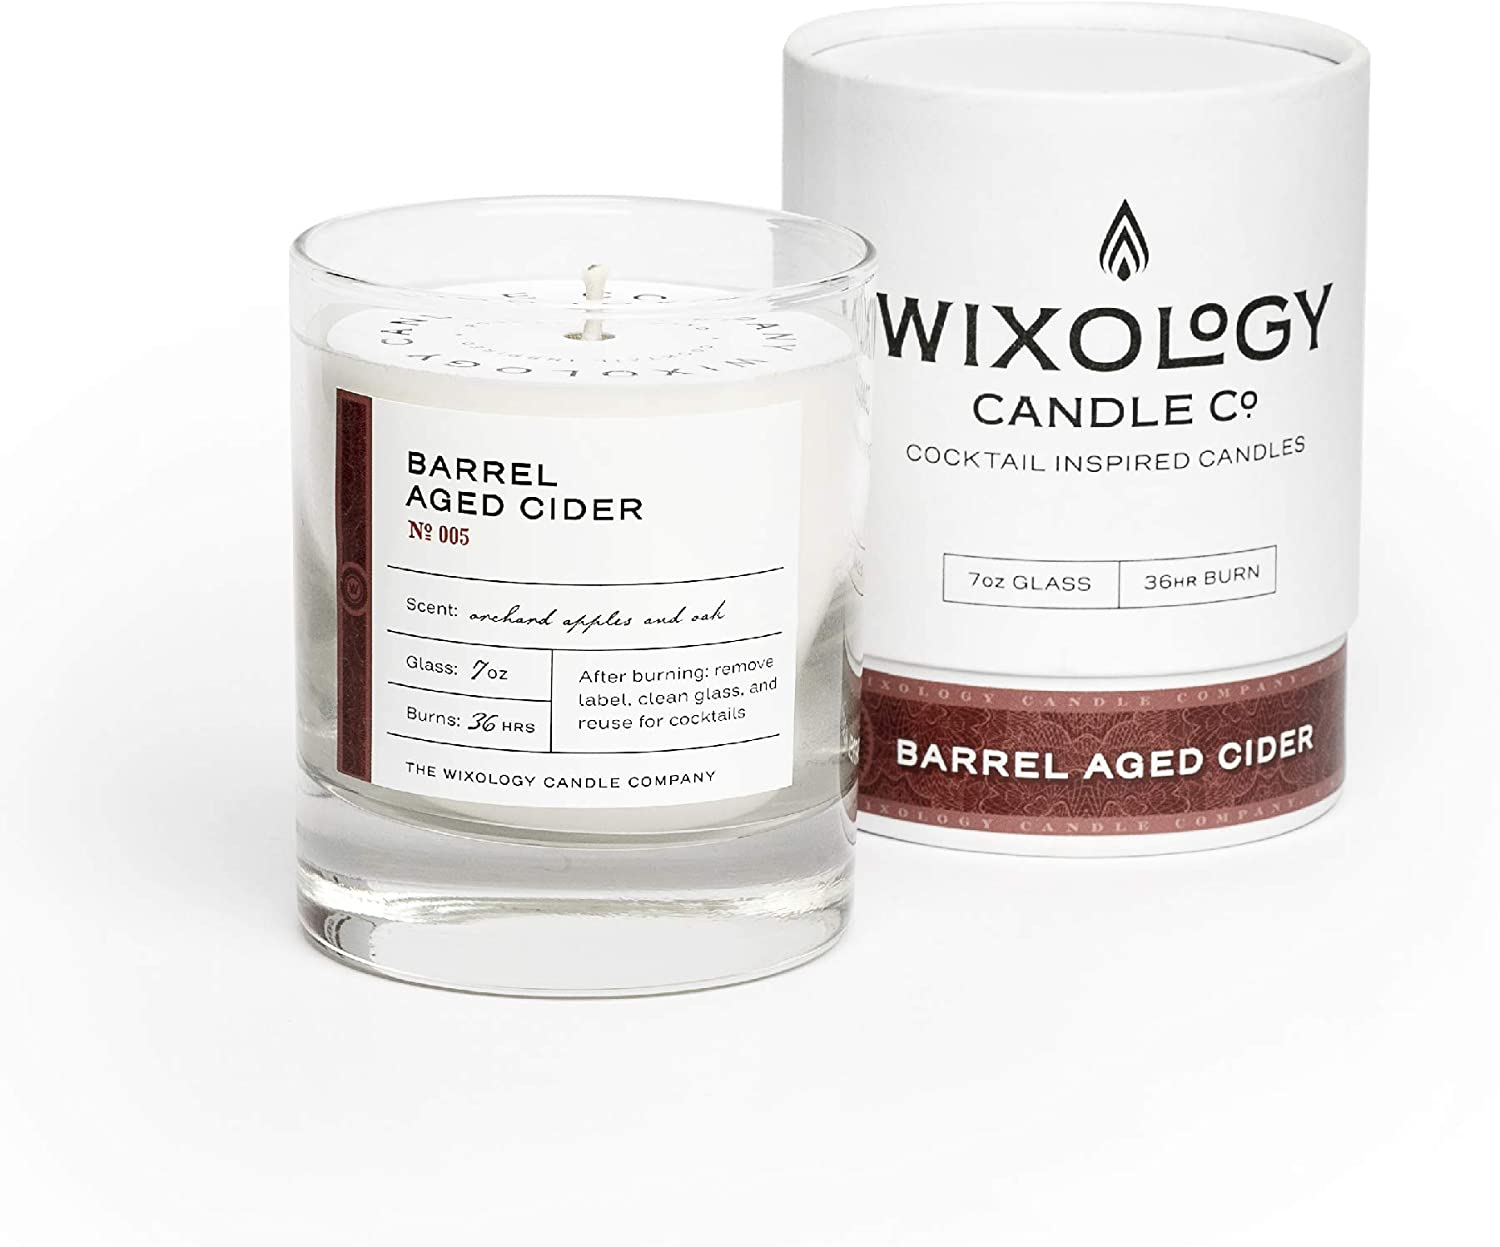 Wixology Cocktail Inspired Barrel Aged Cider Soy Candle - Apple Spices and Oak Scented Candle in Reusable Rocks Glass - Made in Kentucky - 7 oz